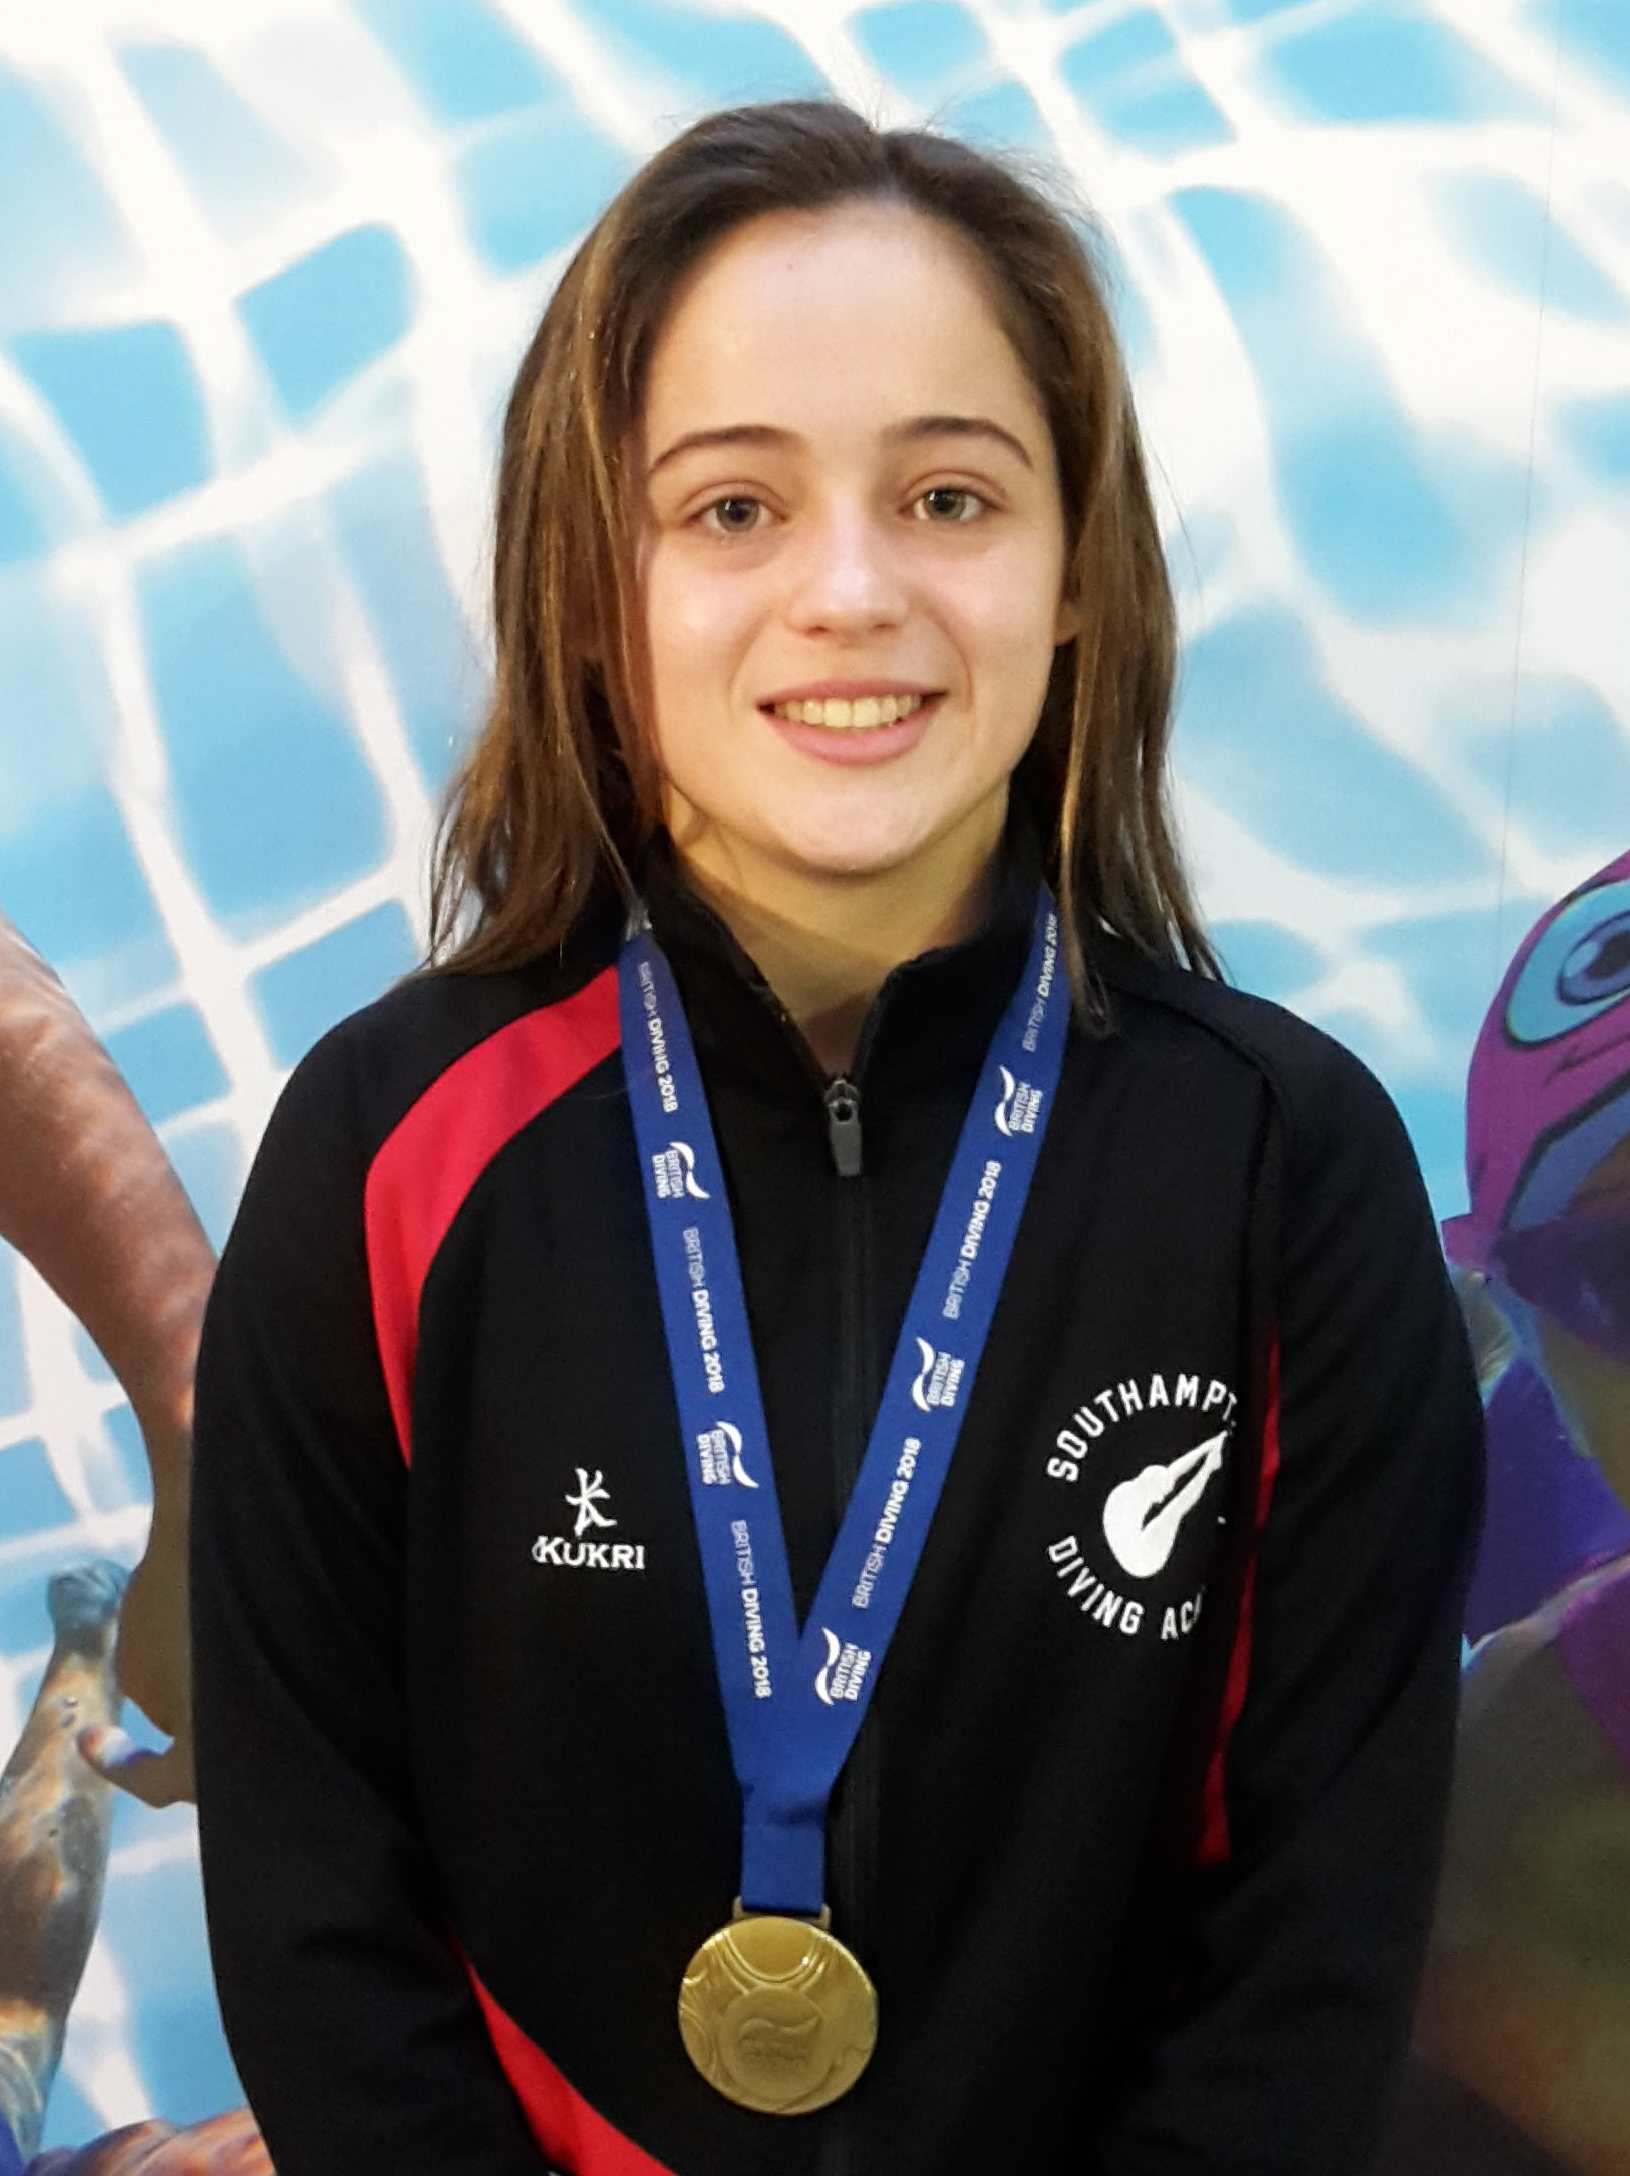 Lucy Hawkins, British national junior 10m platform champion